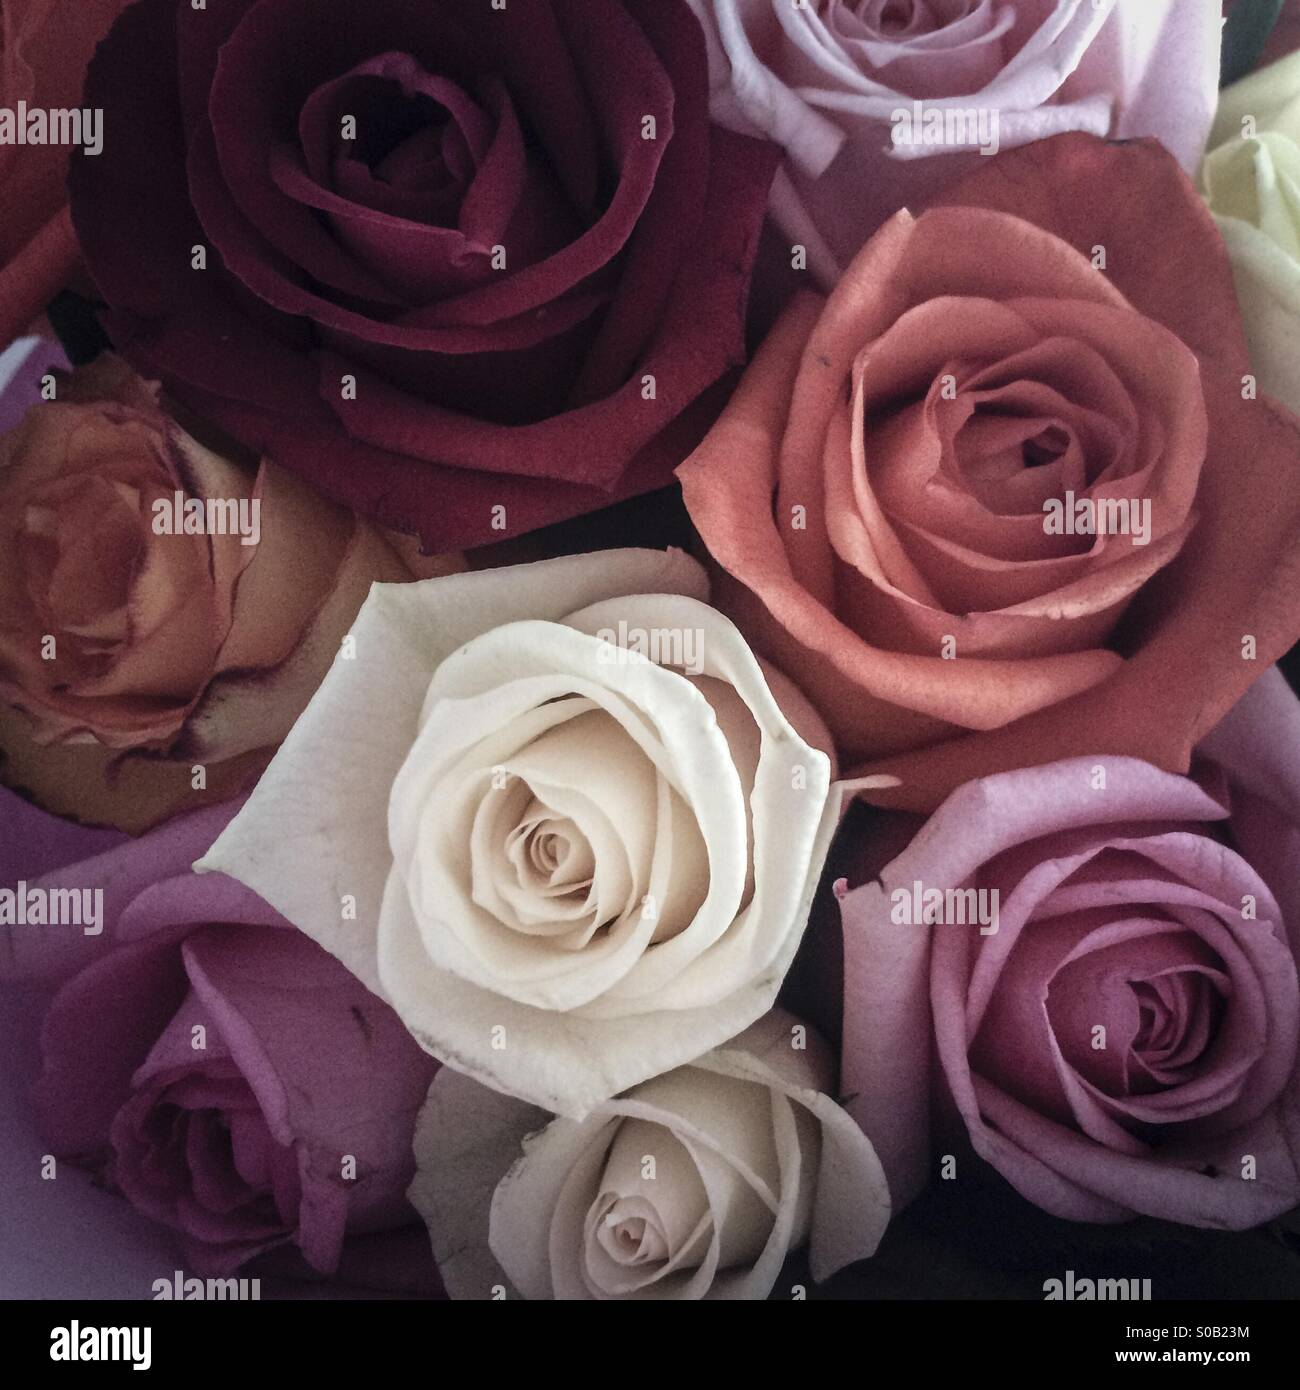 Bouquet of roses, muted tones - Stock Image